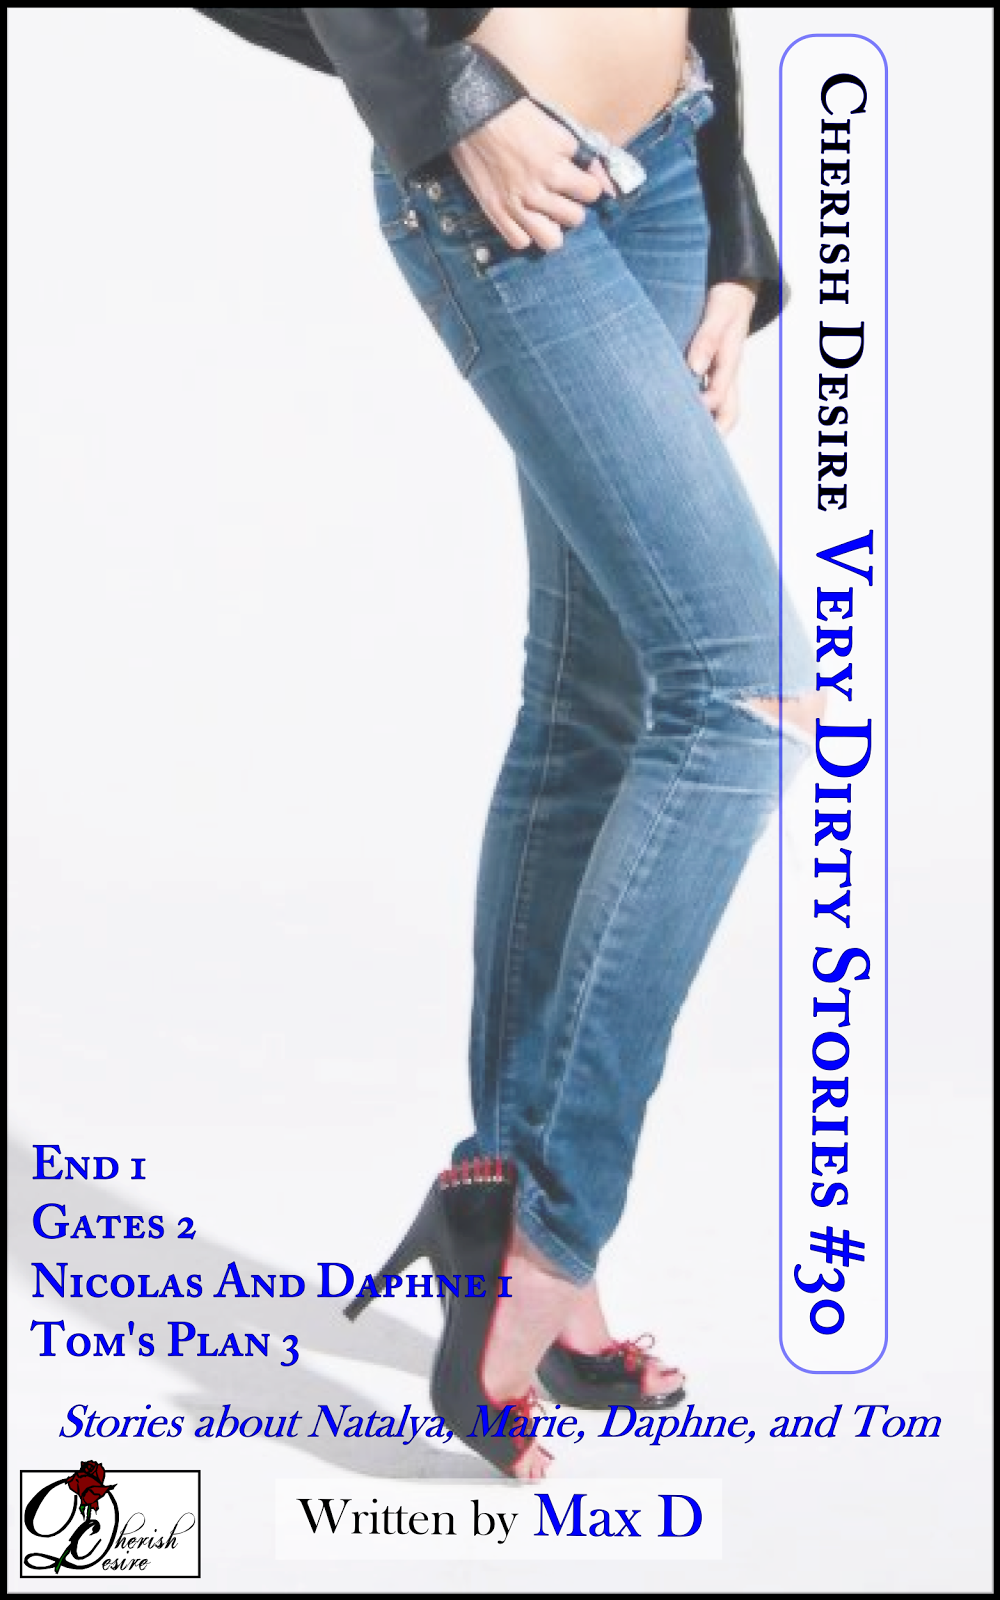 Cherish Desire: Very Dirty Stories #30, Max D, erotica